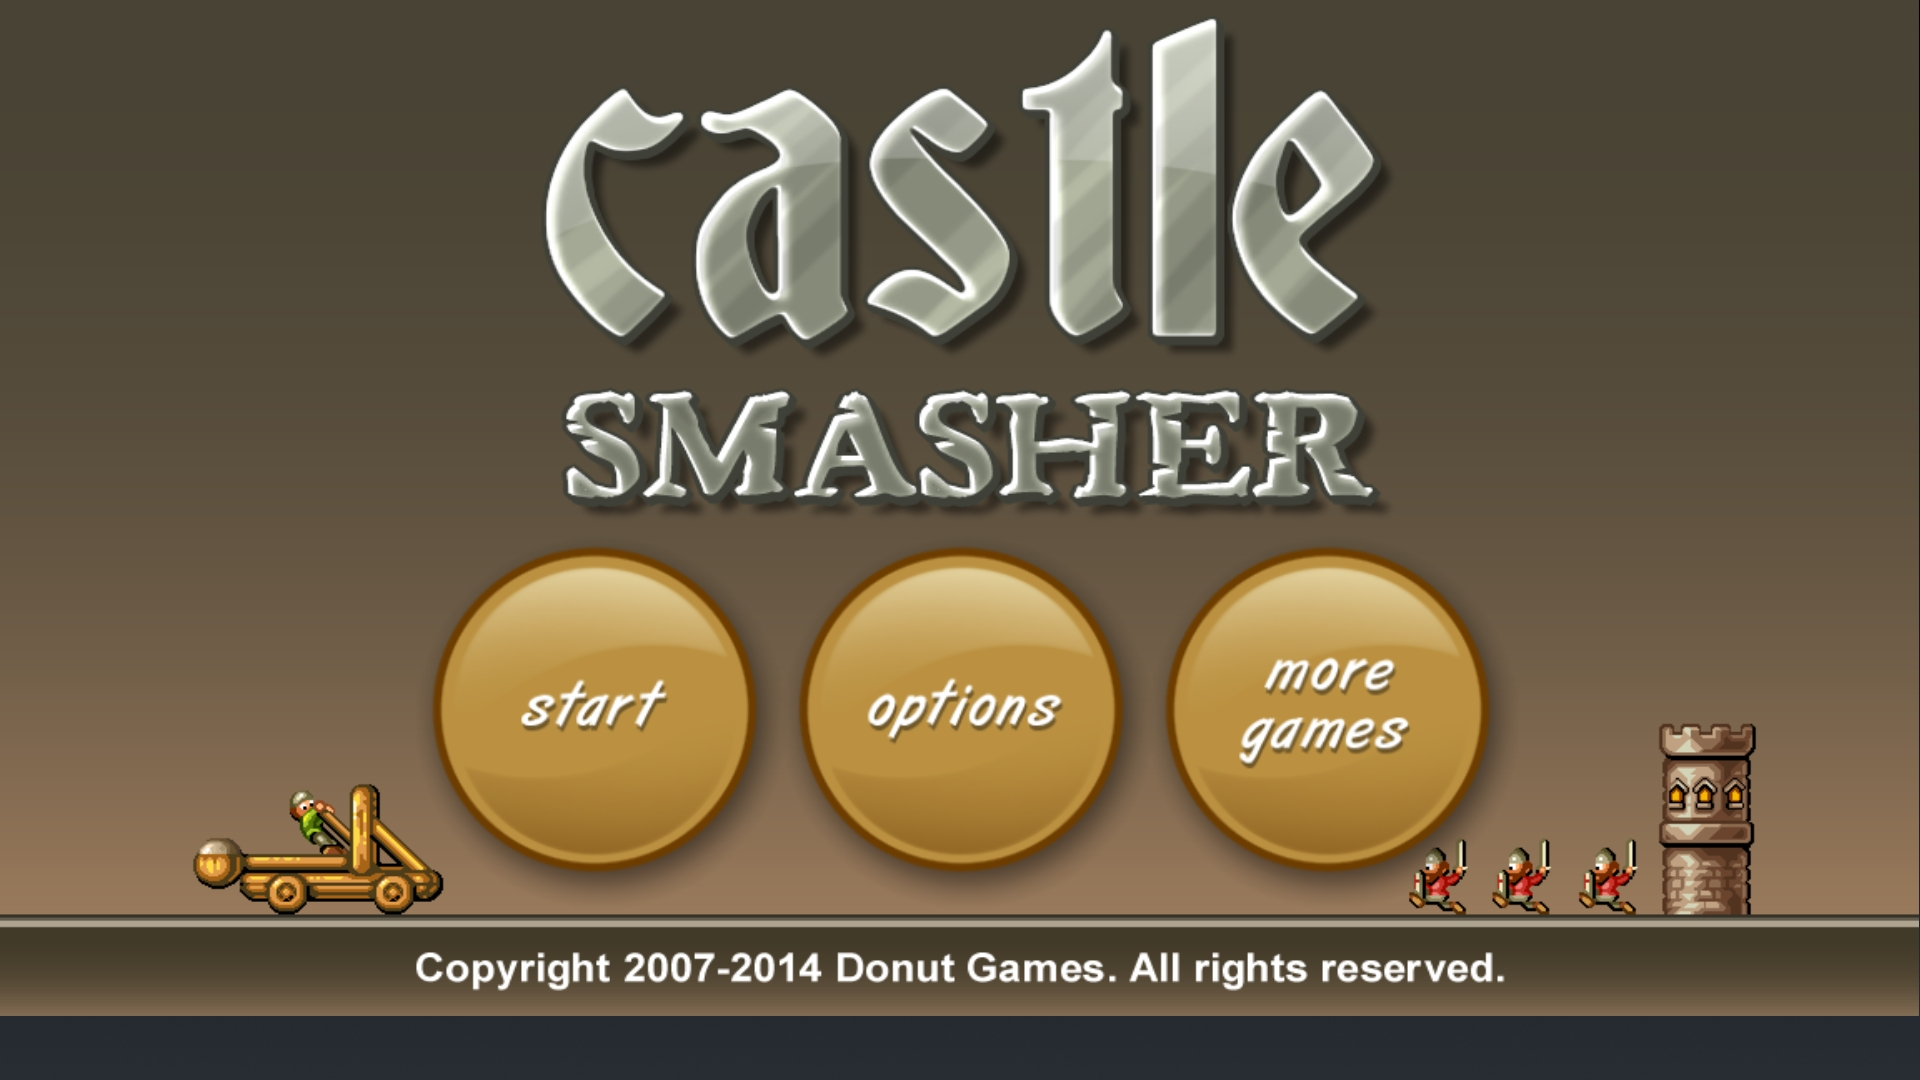 Bamse: Castle Smasher: Challenges: 08 The Hay Stock (Android) 62 points on 2019-08-21 17:10:41